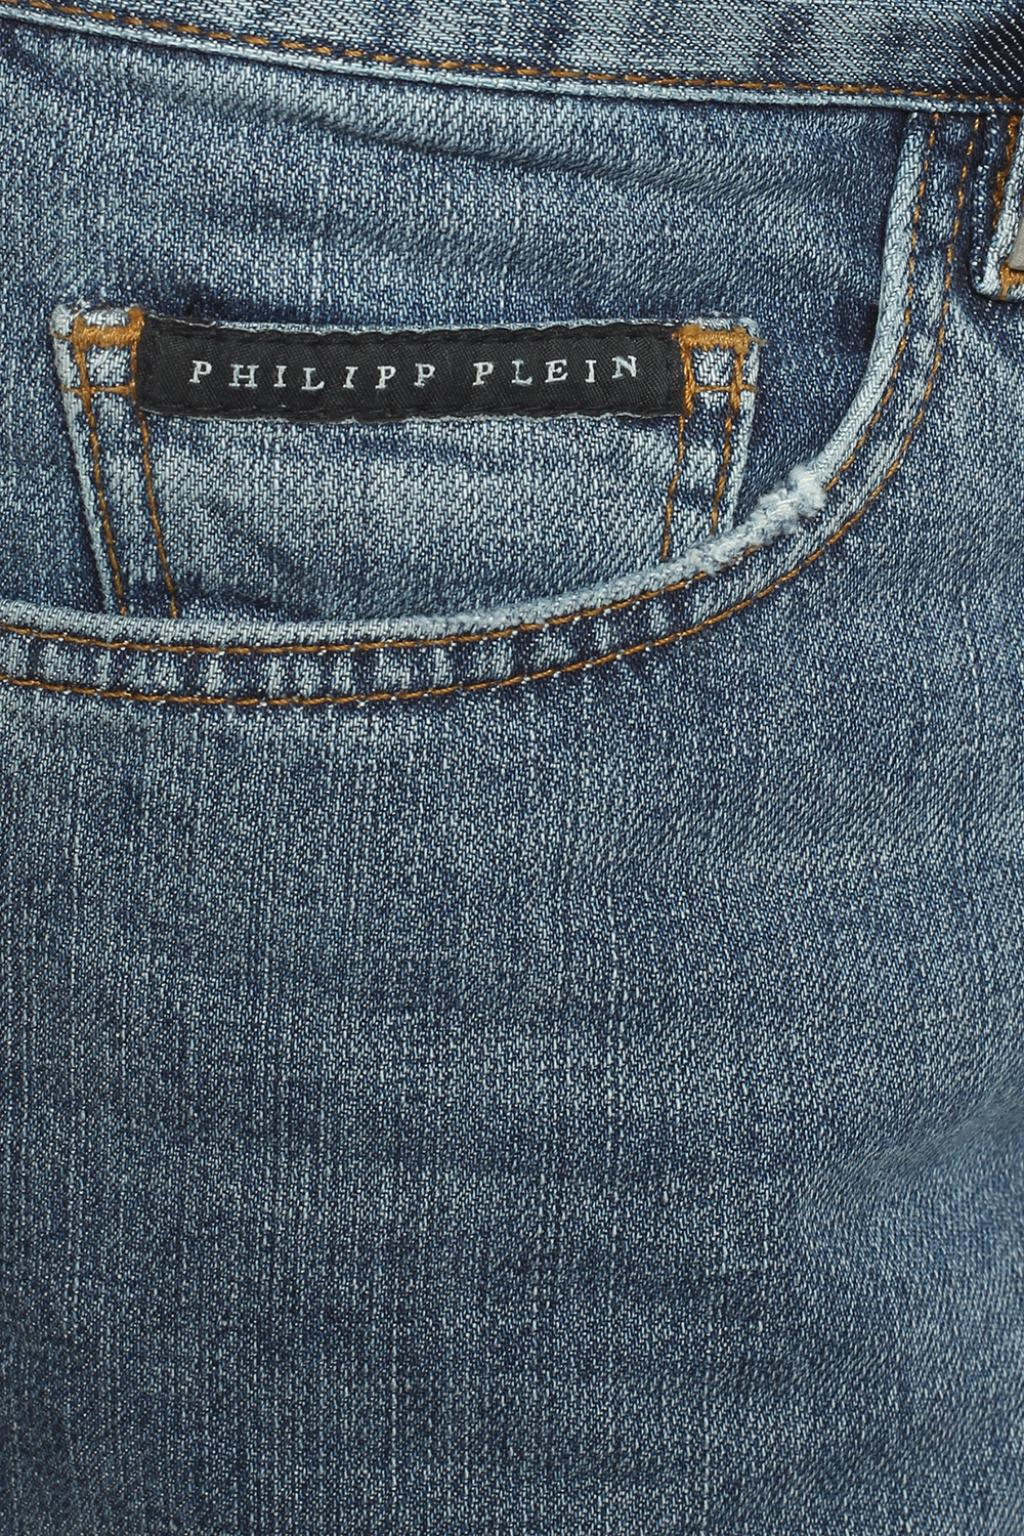 Philipp Plein Denim Jeans With Quilted Inserts in Blue for Men